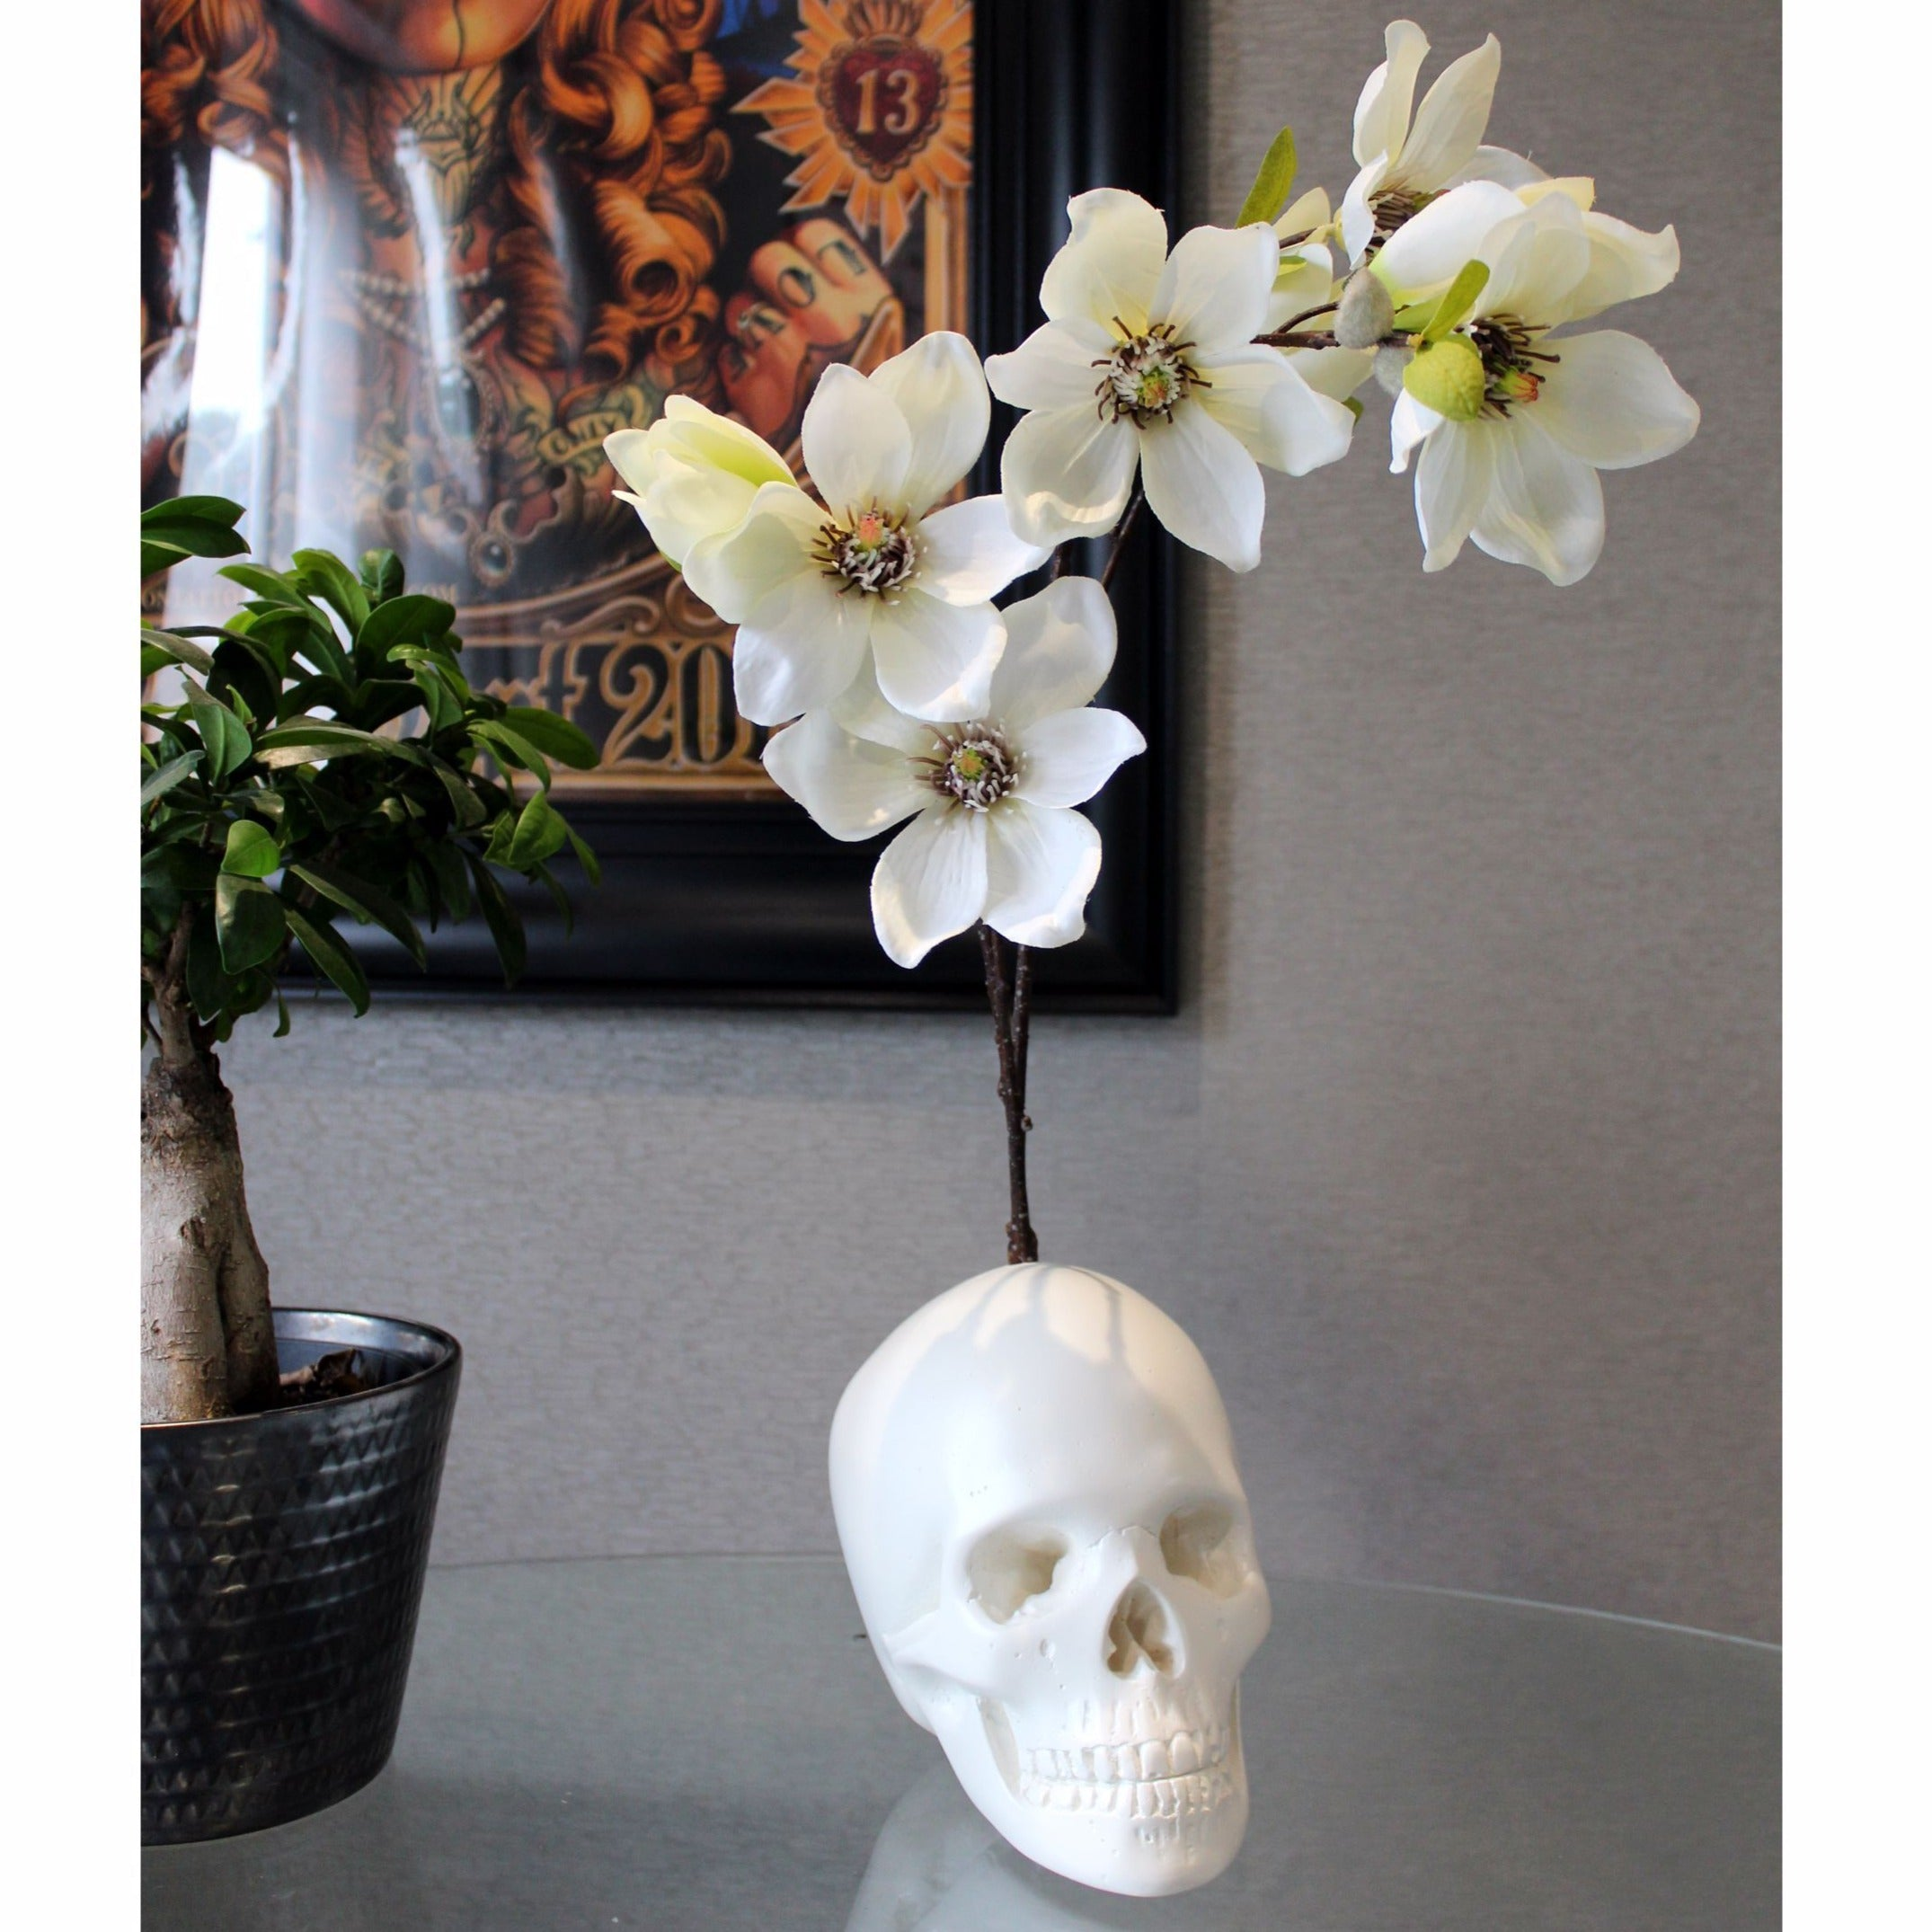 Magnolia Skull Flowerhead - The Blackened Teeth